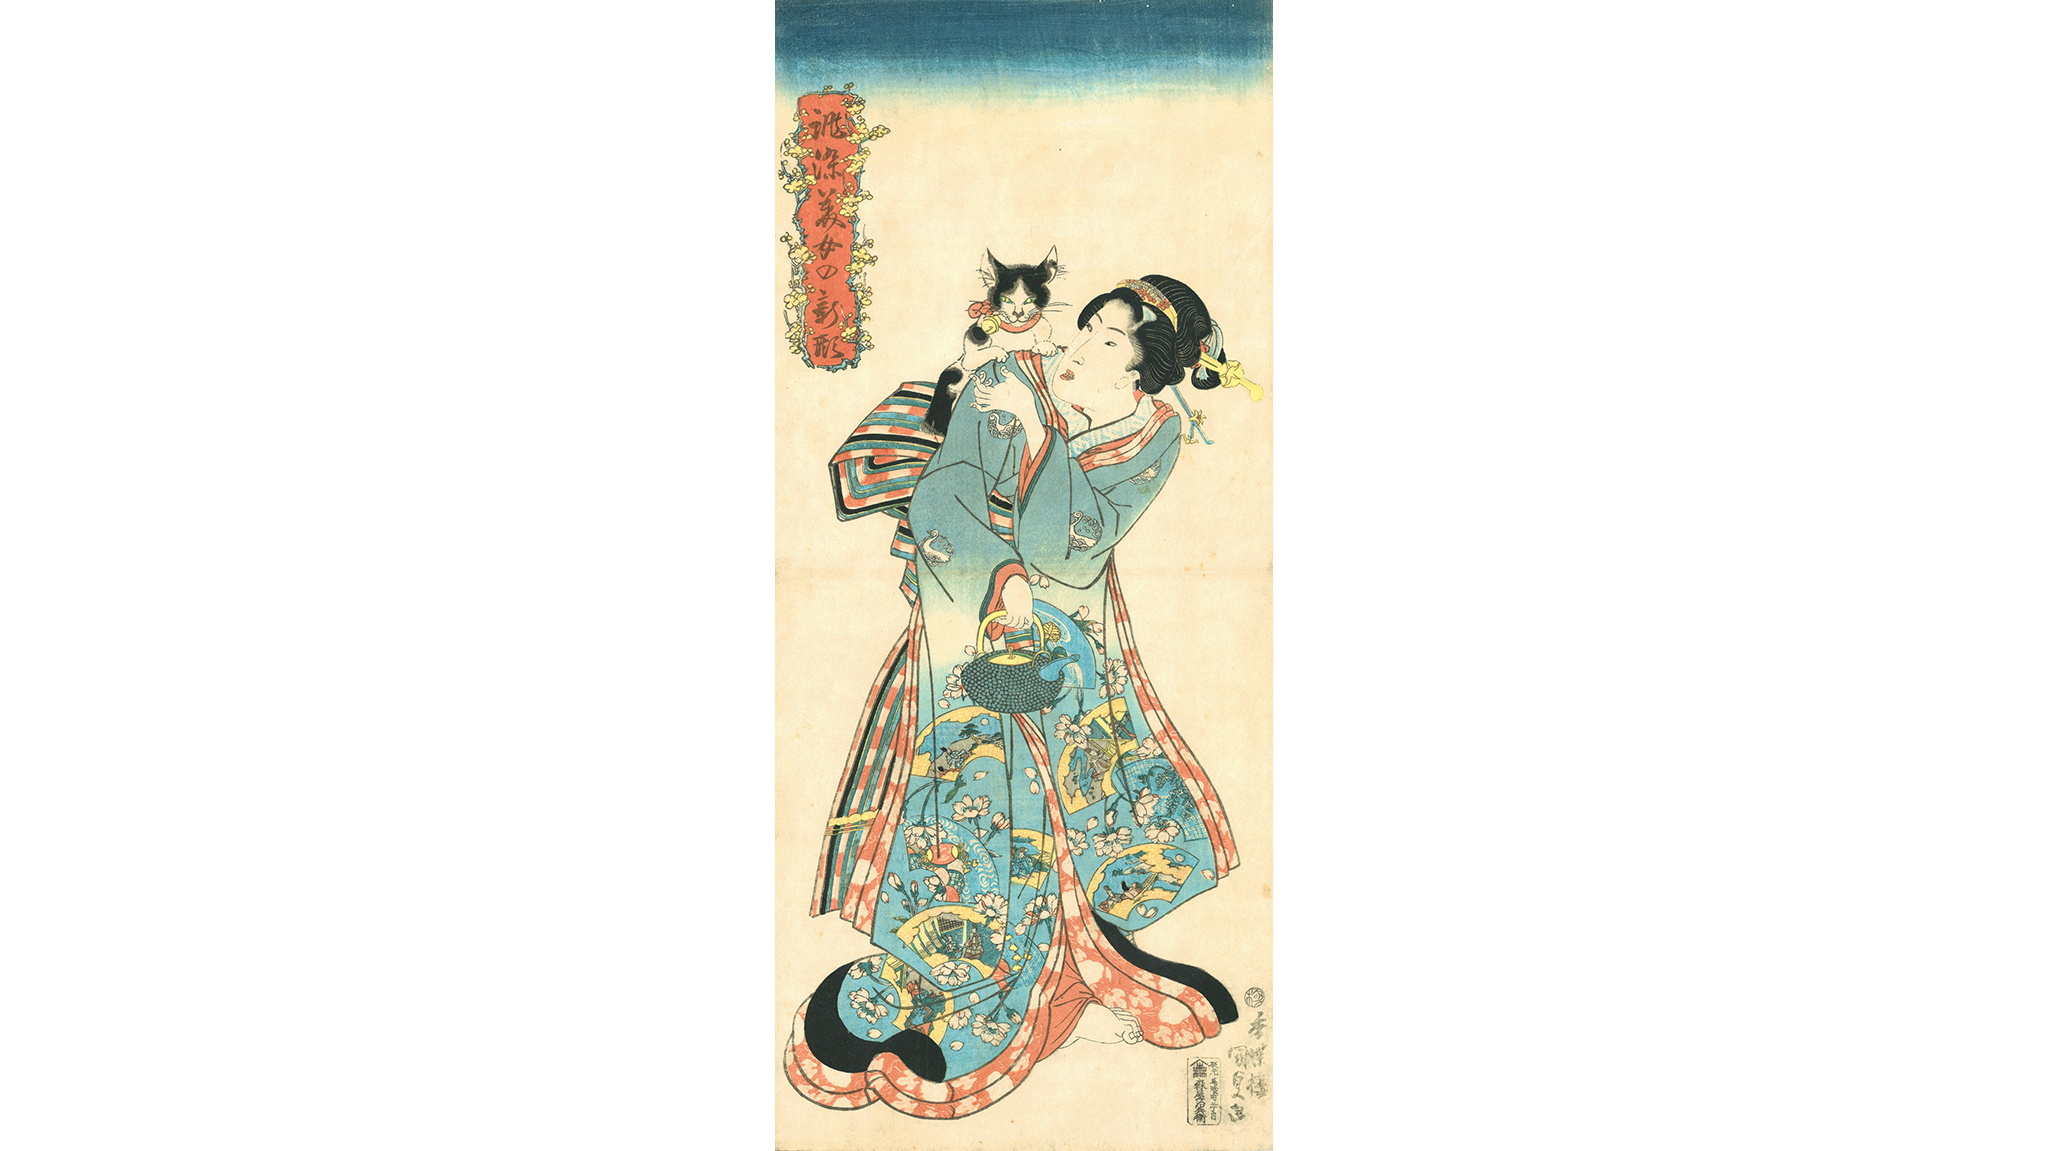 Utagawa Kunisada (1786–1864), Cat and Beauty from the series Beauties in New Styles Dyed to Order, 1818–30. Color woodblock print; 22 ½ x 16 inches.